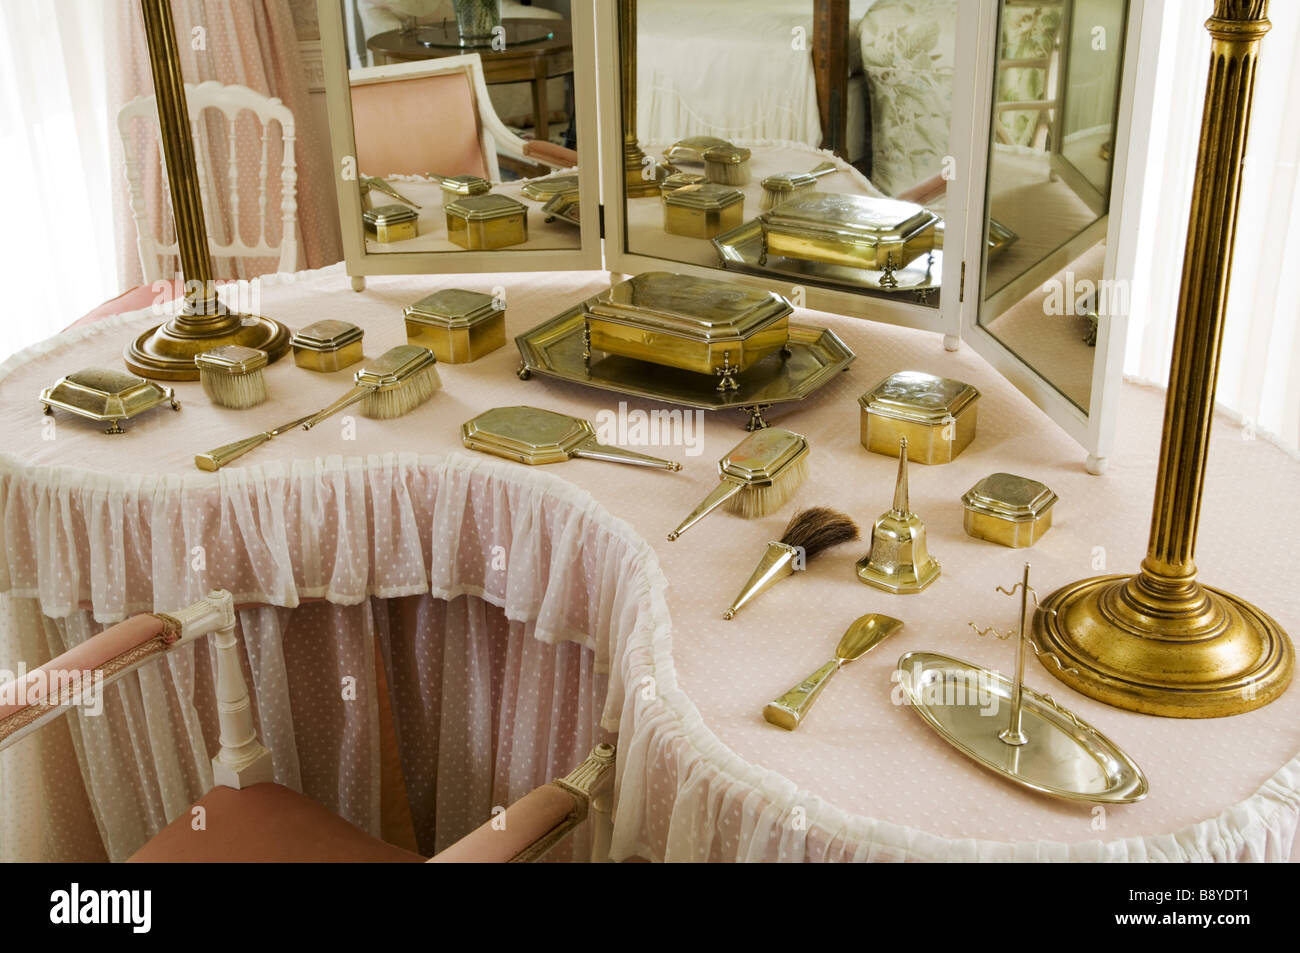 The Kidney Shaped Dressing Table In Lady Anglesey S Bedroom At Plas Newydd  On The Isle Of Anglesey Wales